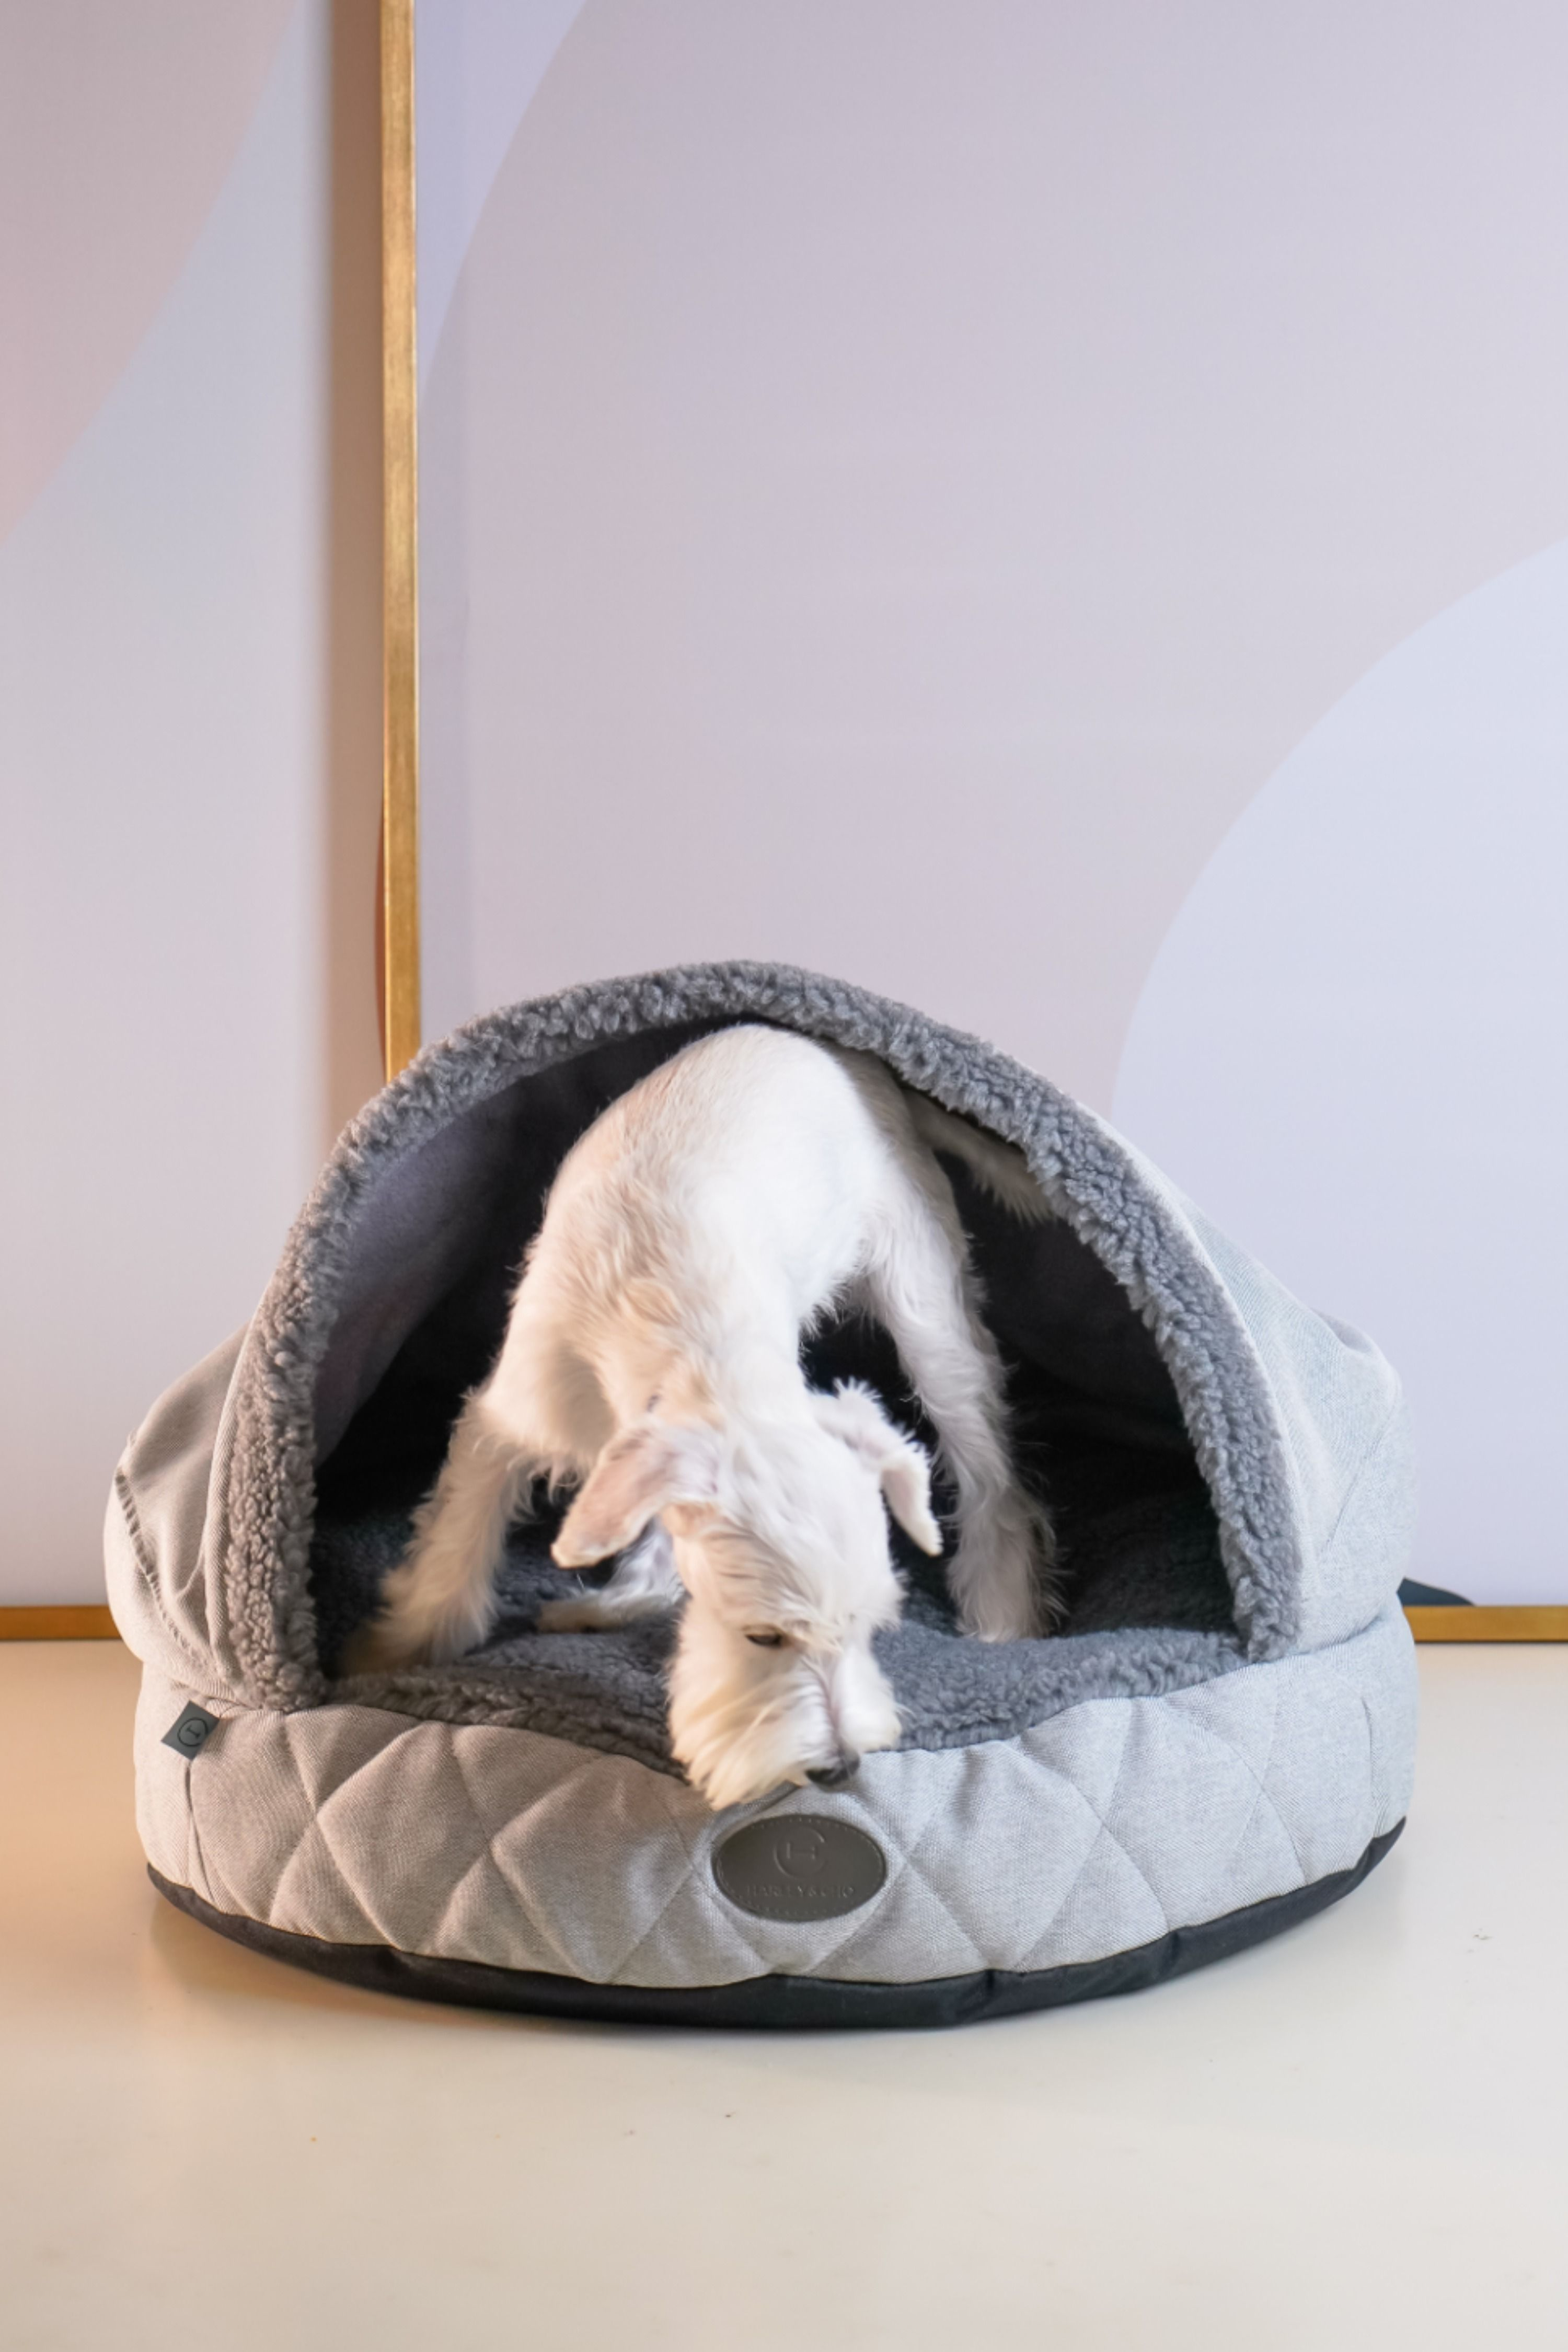 Plush Cave Bed For Dog Bed Cave Snuggly Bedding Italian Greyhound Sleeping Bags Snuggle Bags For Iggy In 2021 Italian Greyhound Pet Safety Dog Bed